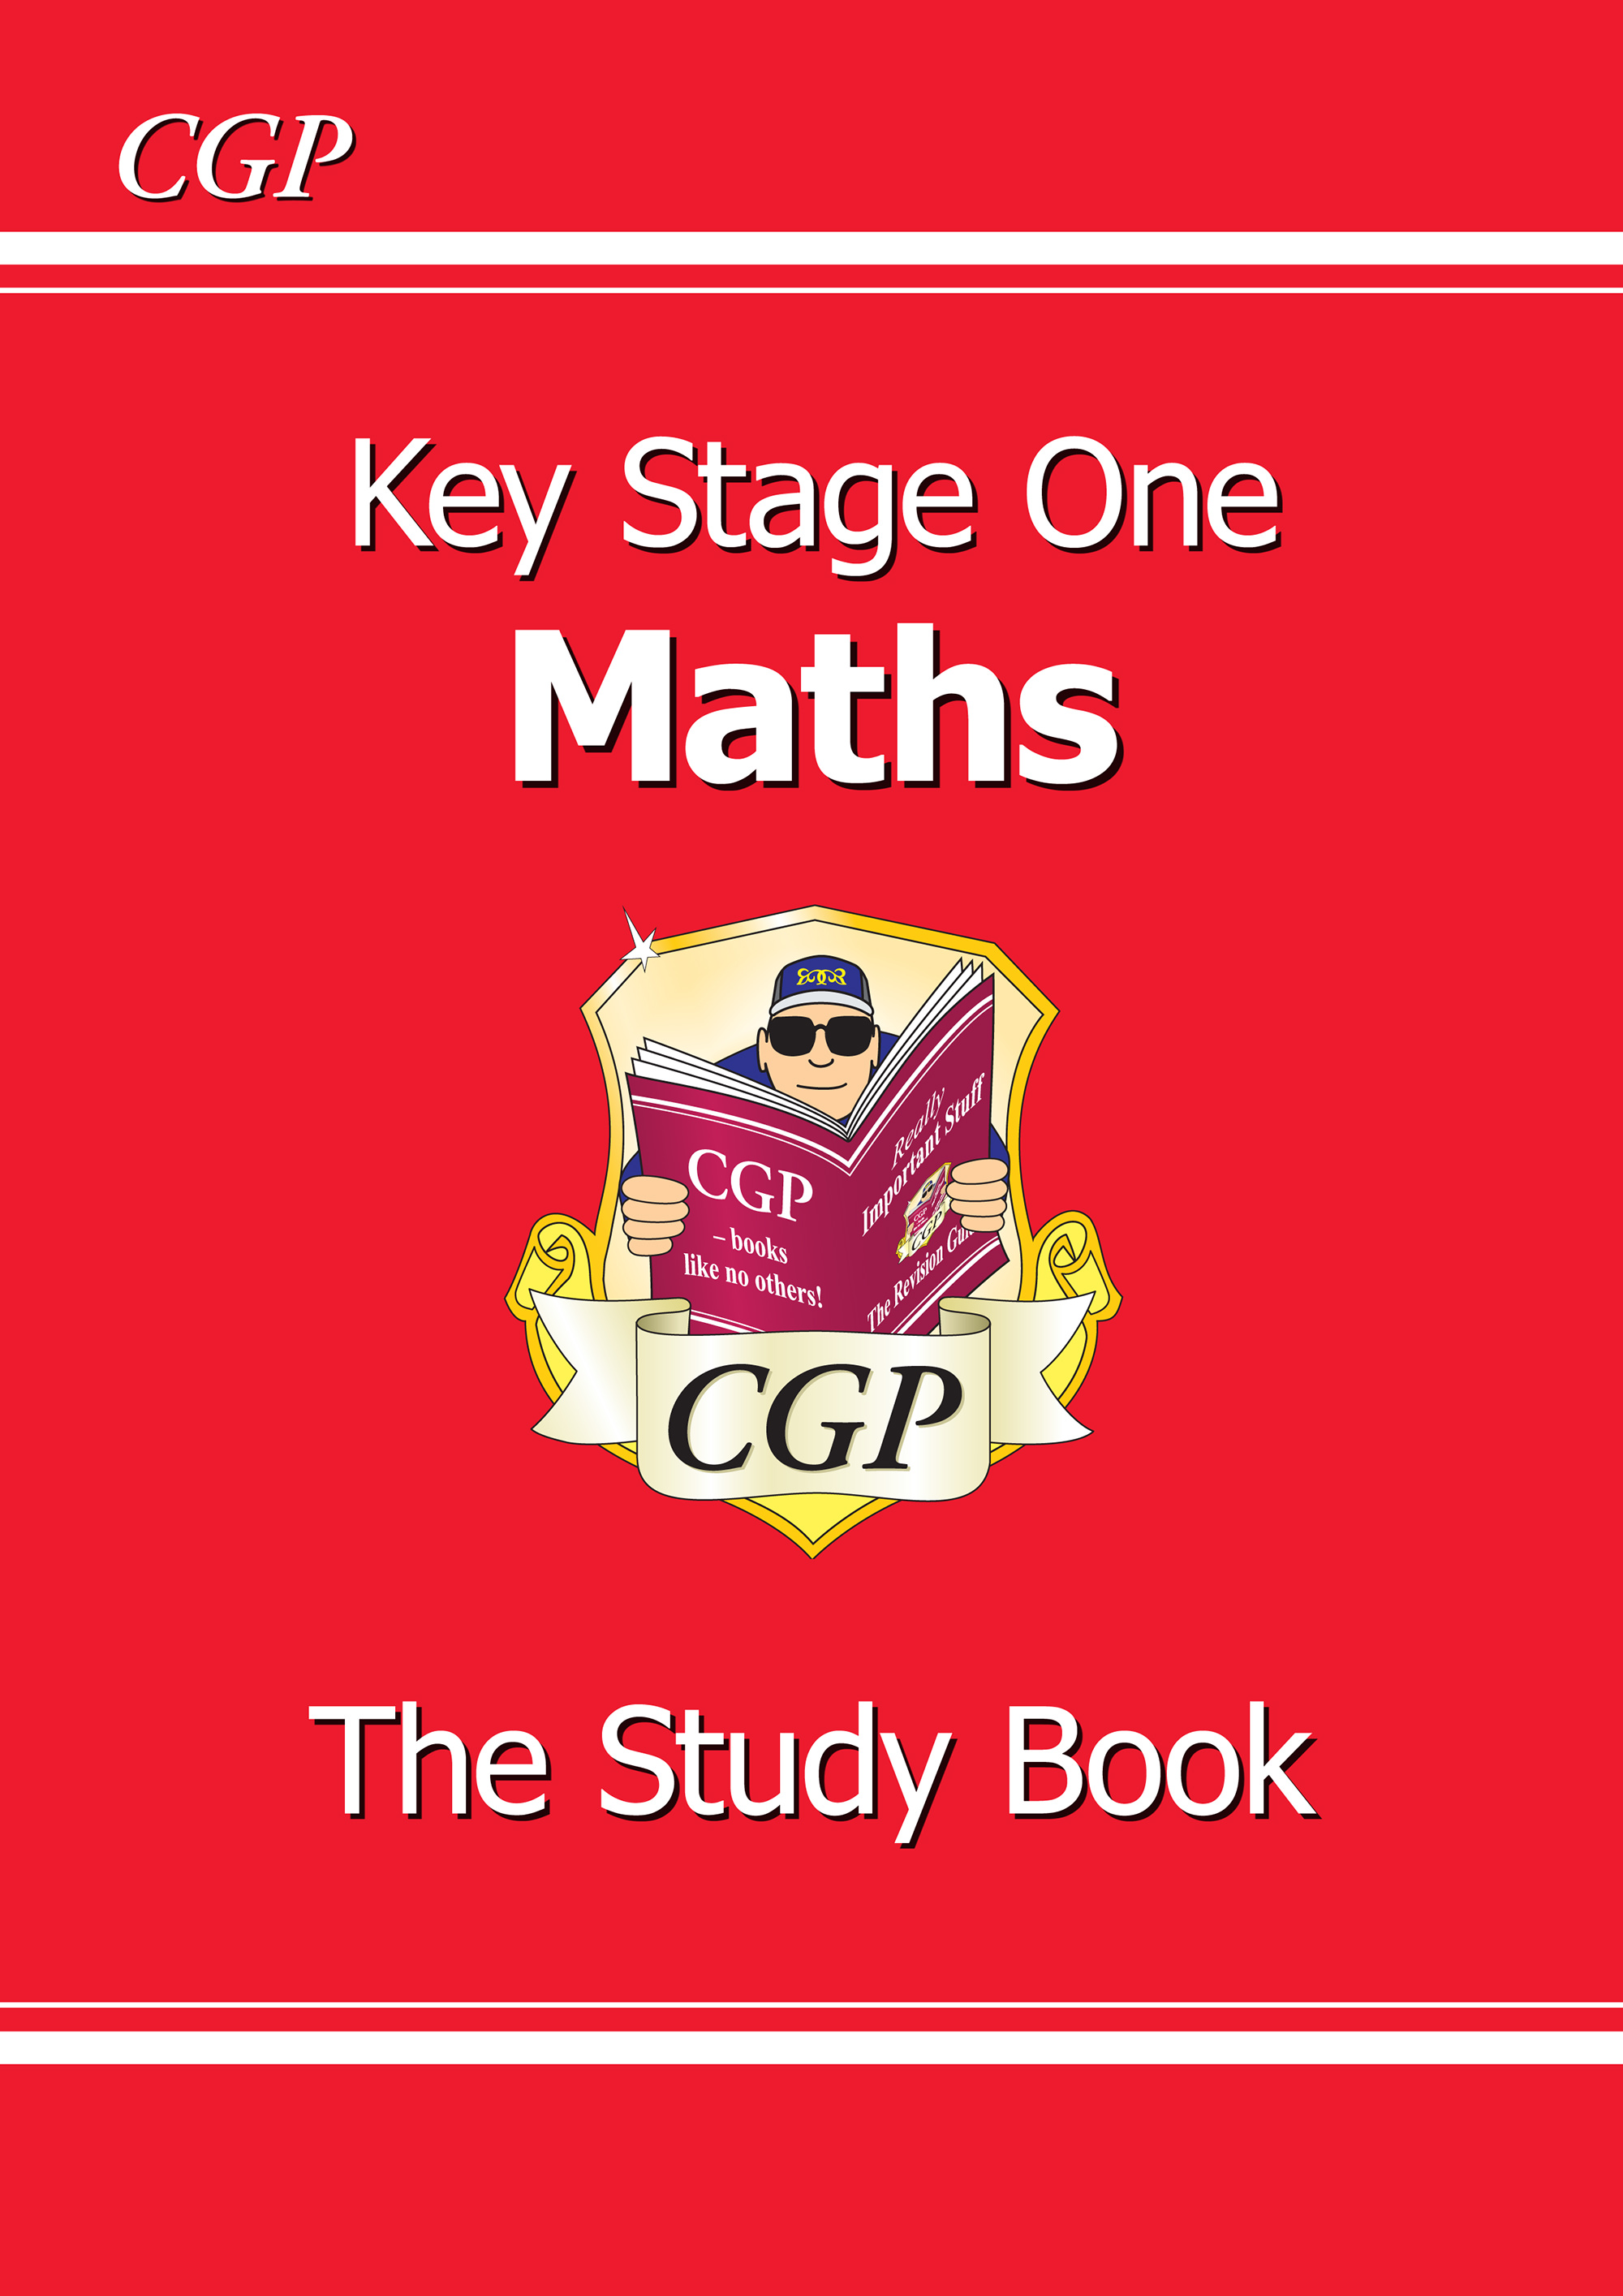 MHR12 - KS1 Maths Study Book